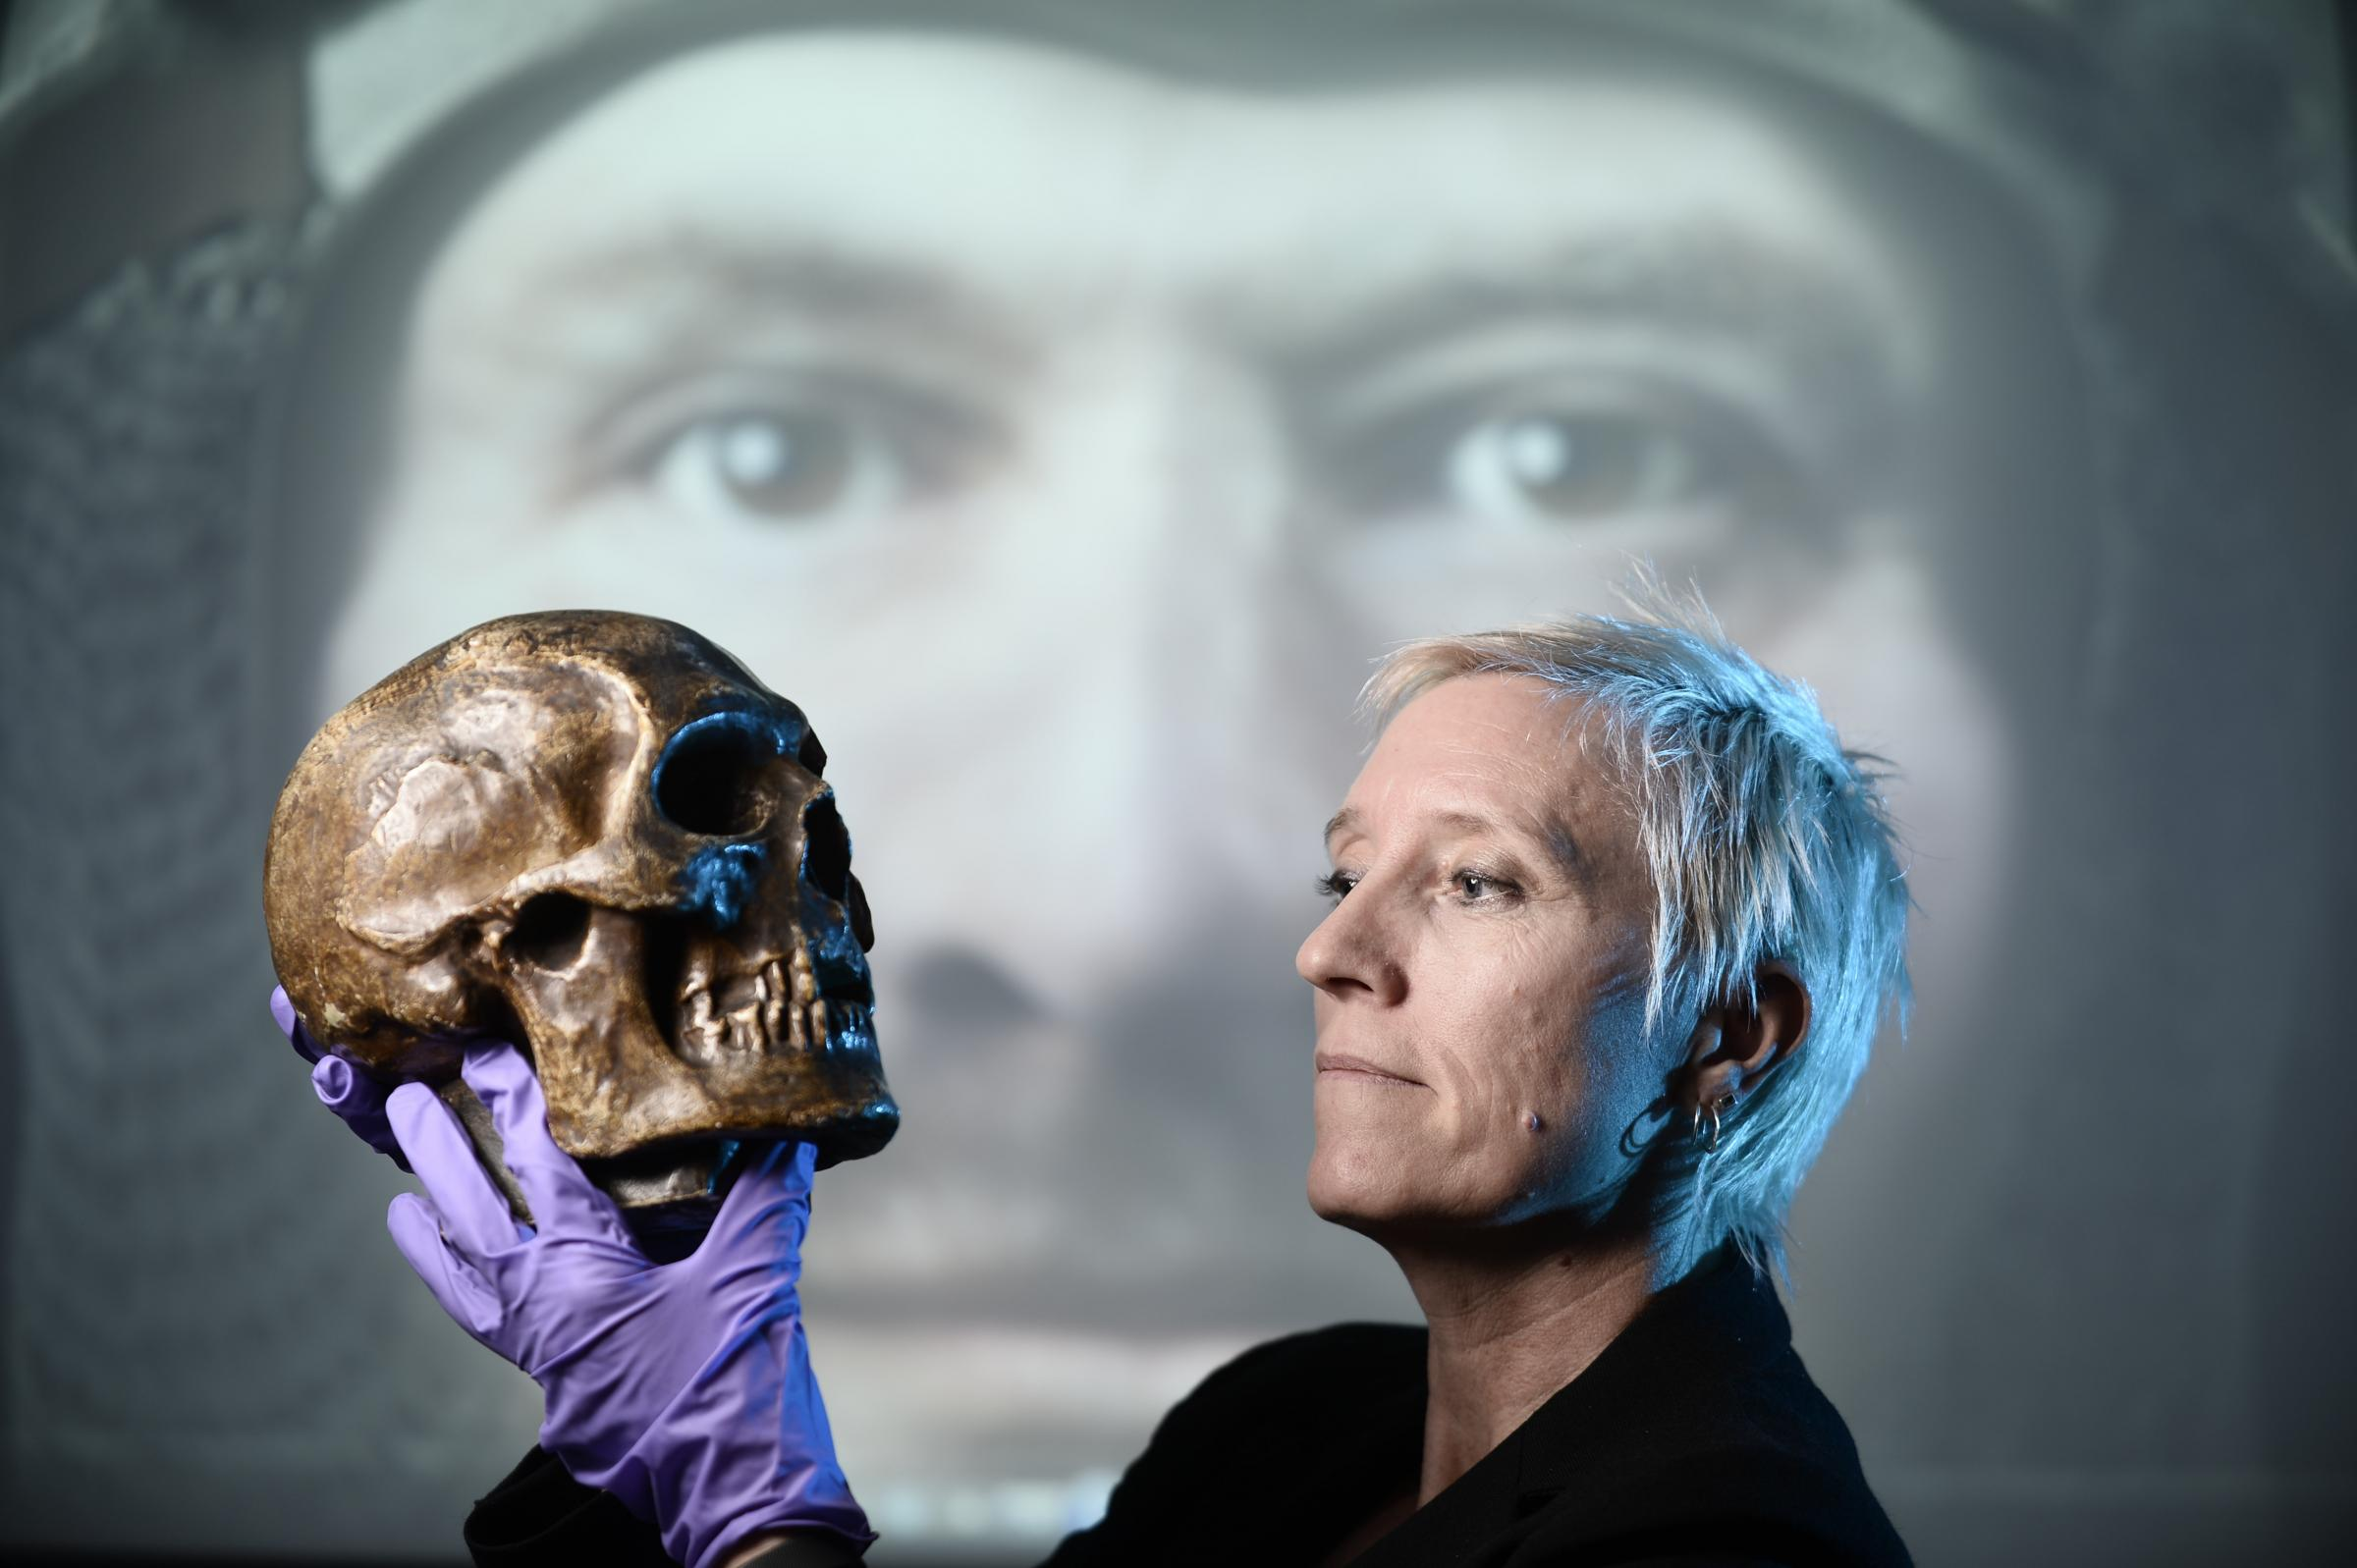 Caroline Wilkinson used the skull found in King Robert I's tomb to create a rendering of the king's face